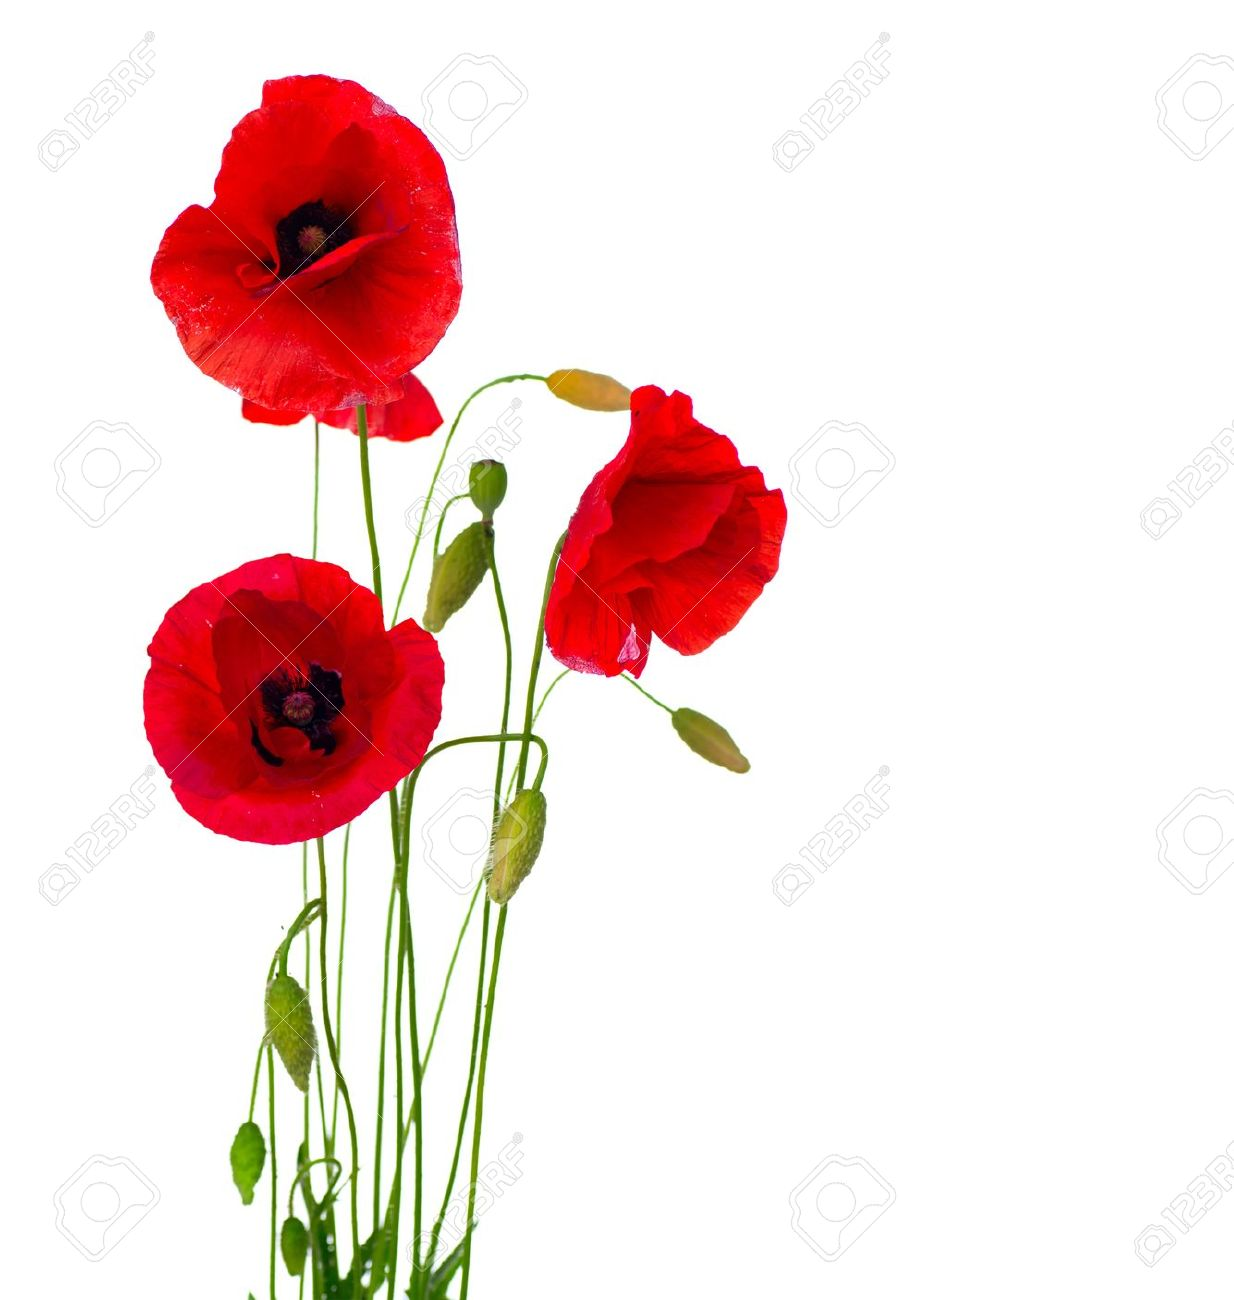 Red Poppy Flower Isolated on a White Background Stock Photo - 14306290